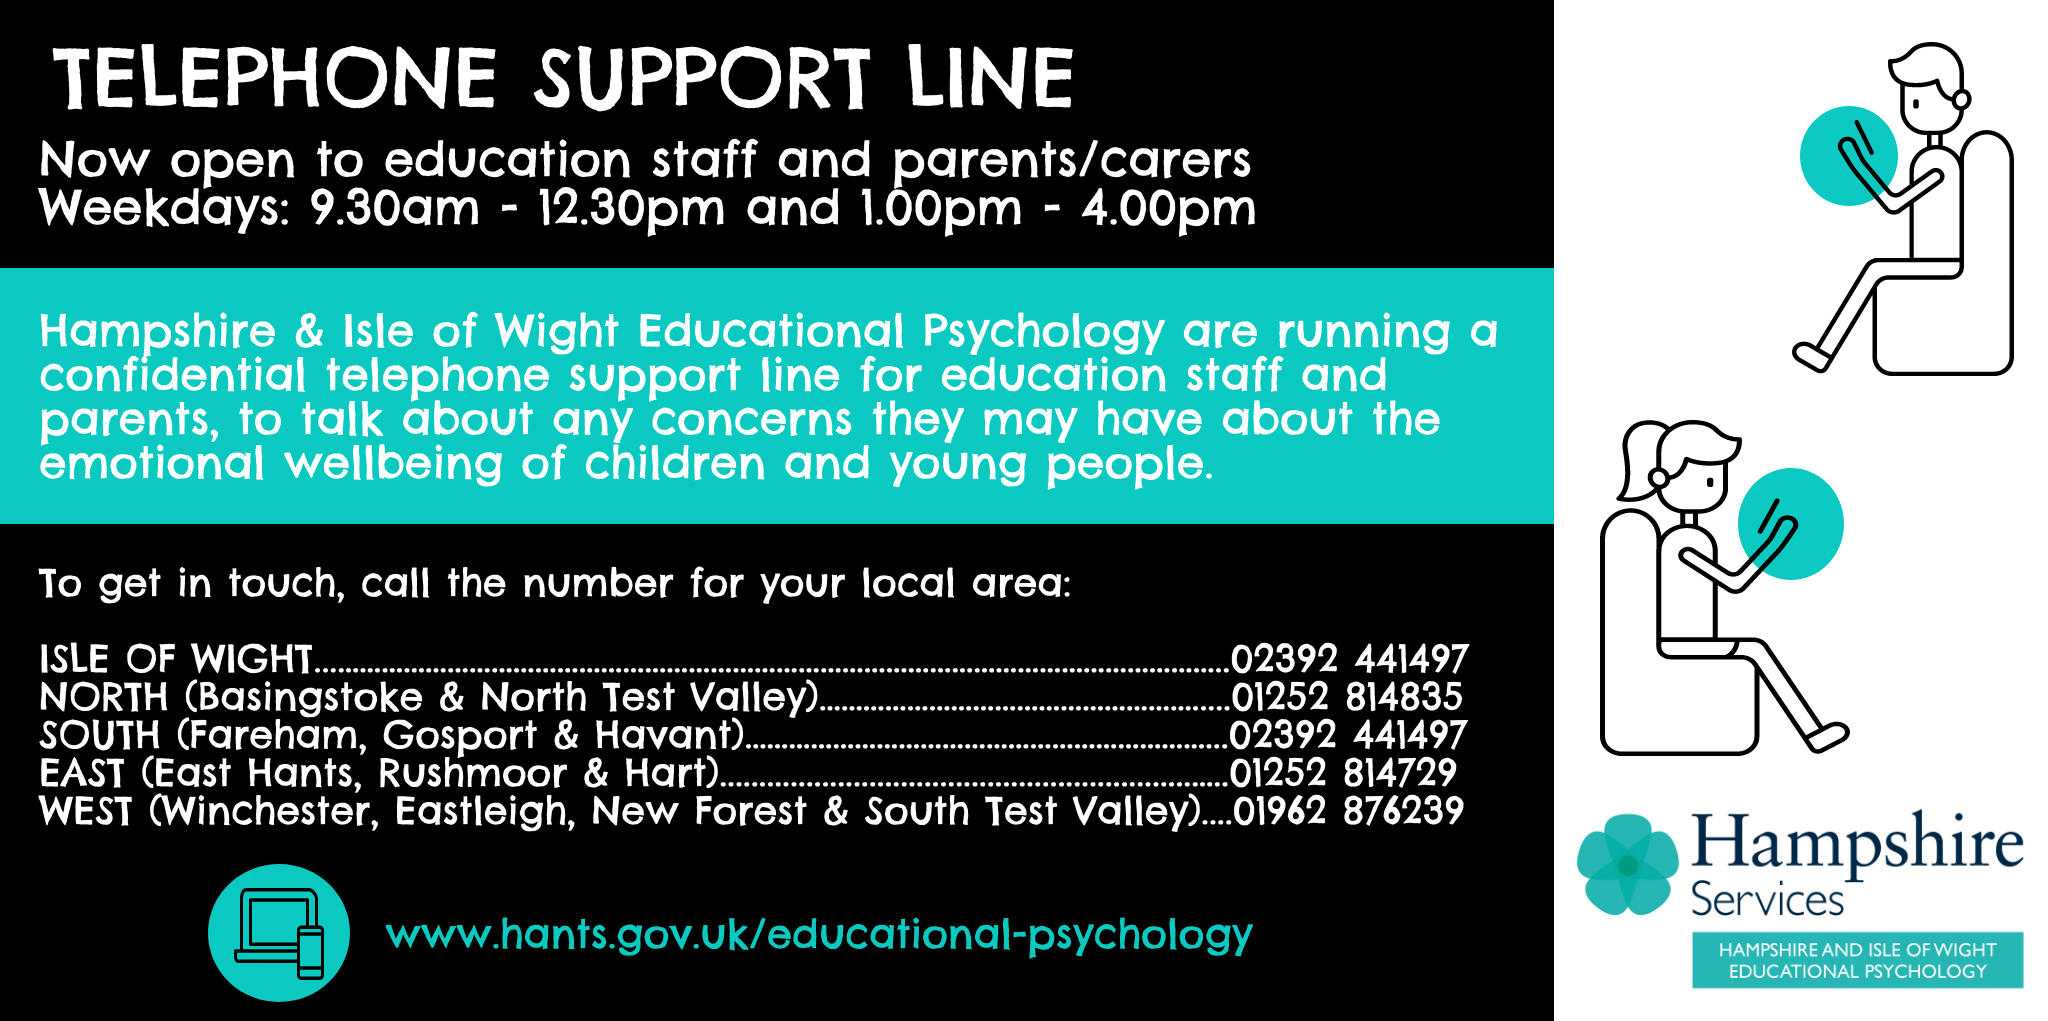 Telephone Support Line now open to education staff and parents/carers 01962 876239